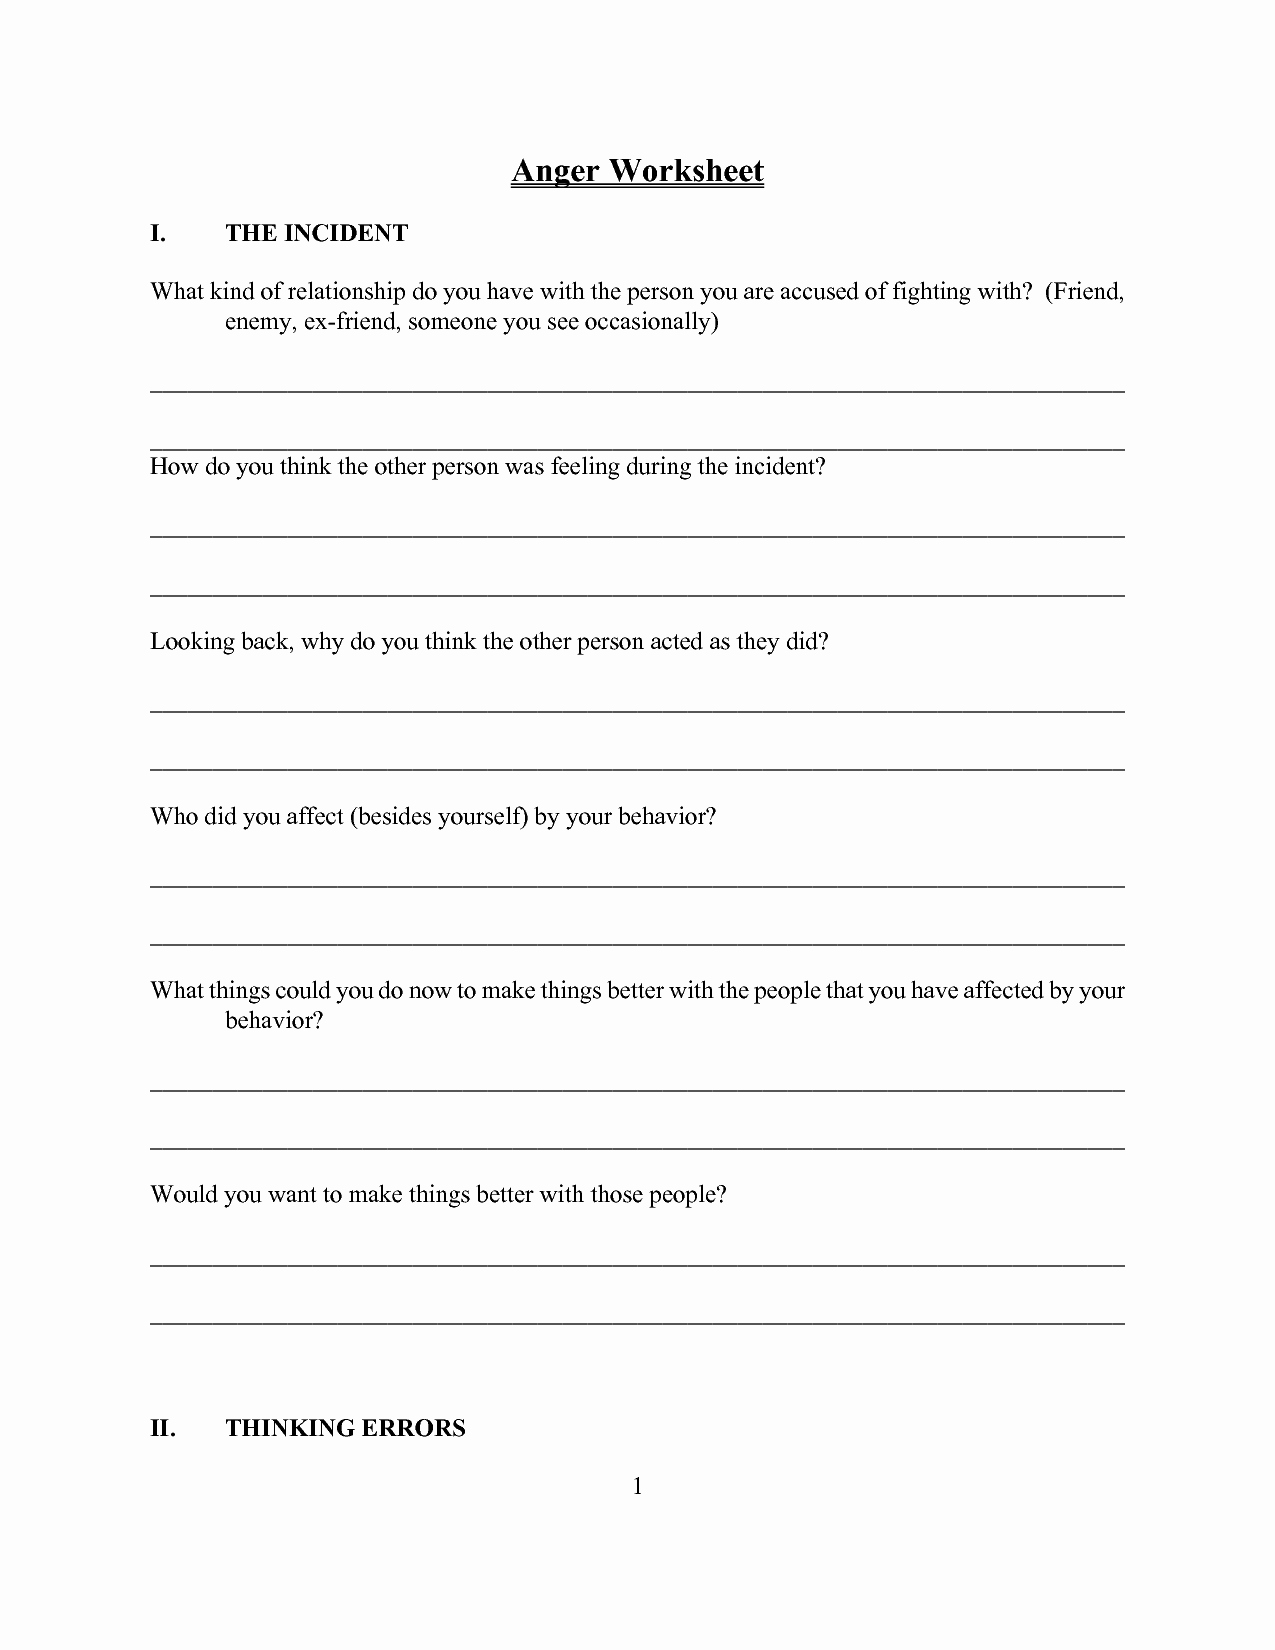 Anger Management Worksheet for Teenagers Lovely 19 Best Of Anger Worksheets for Adults Anger